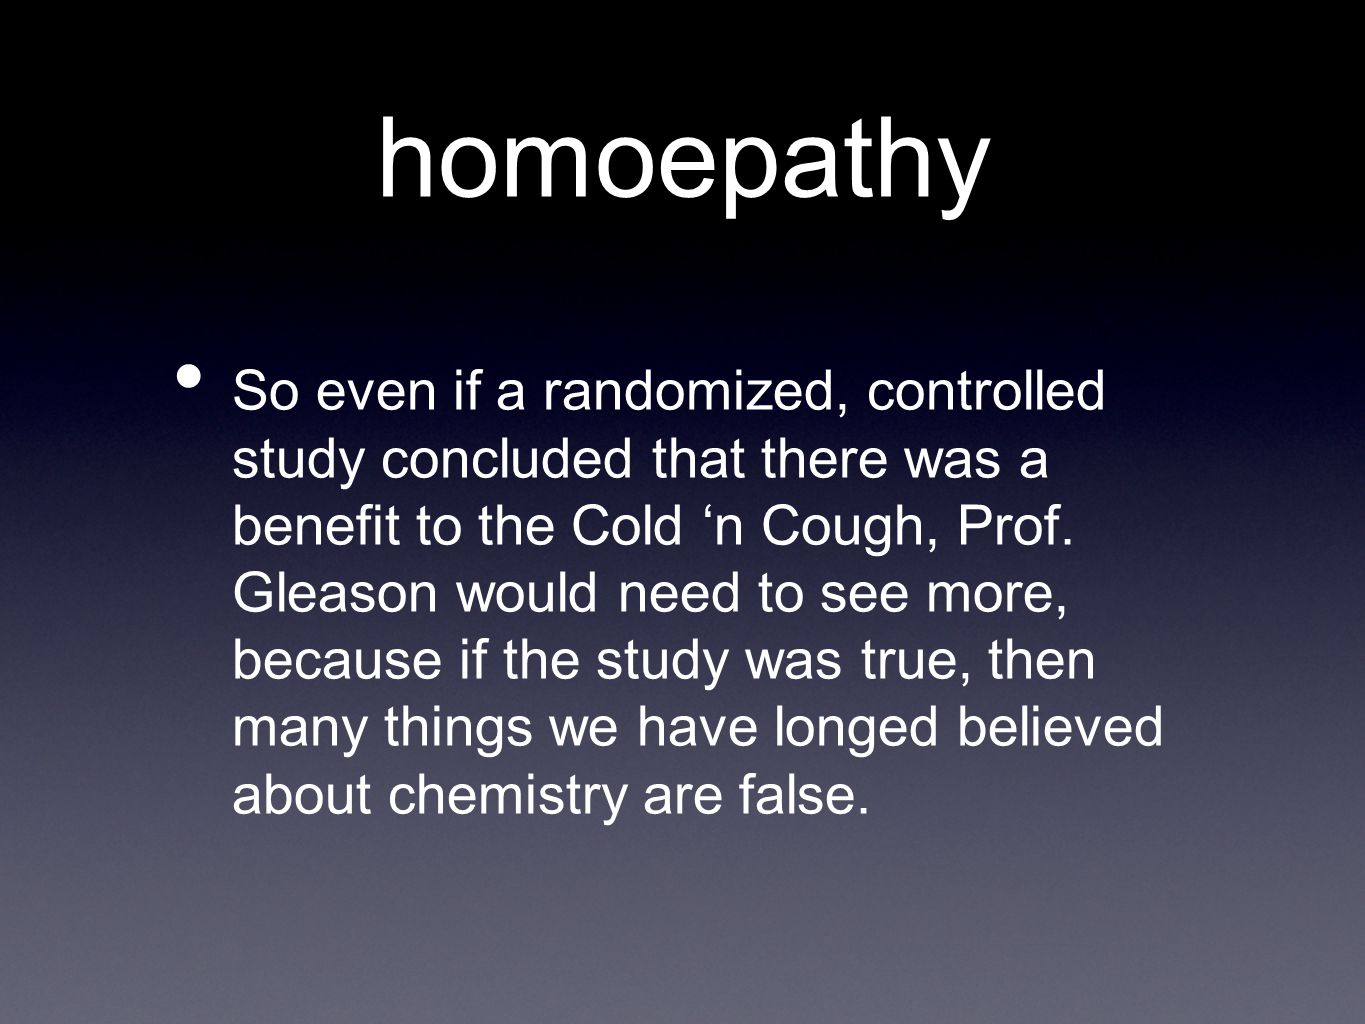 homoepathy So even if a randomized, controlled study concluded that there was a benefit to the Cold 'n Cough, Prof.